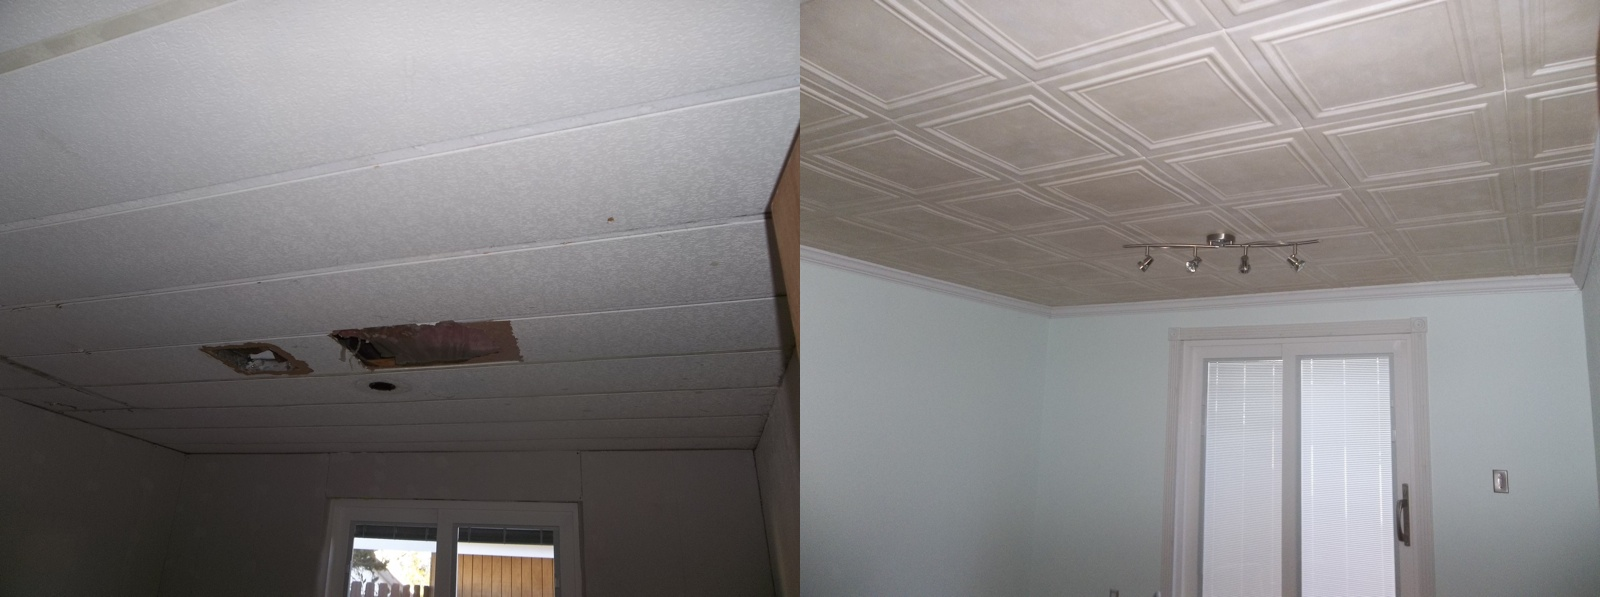 Spray painting ceiling tiles